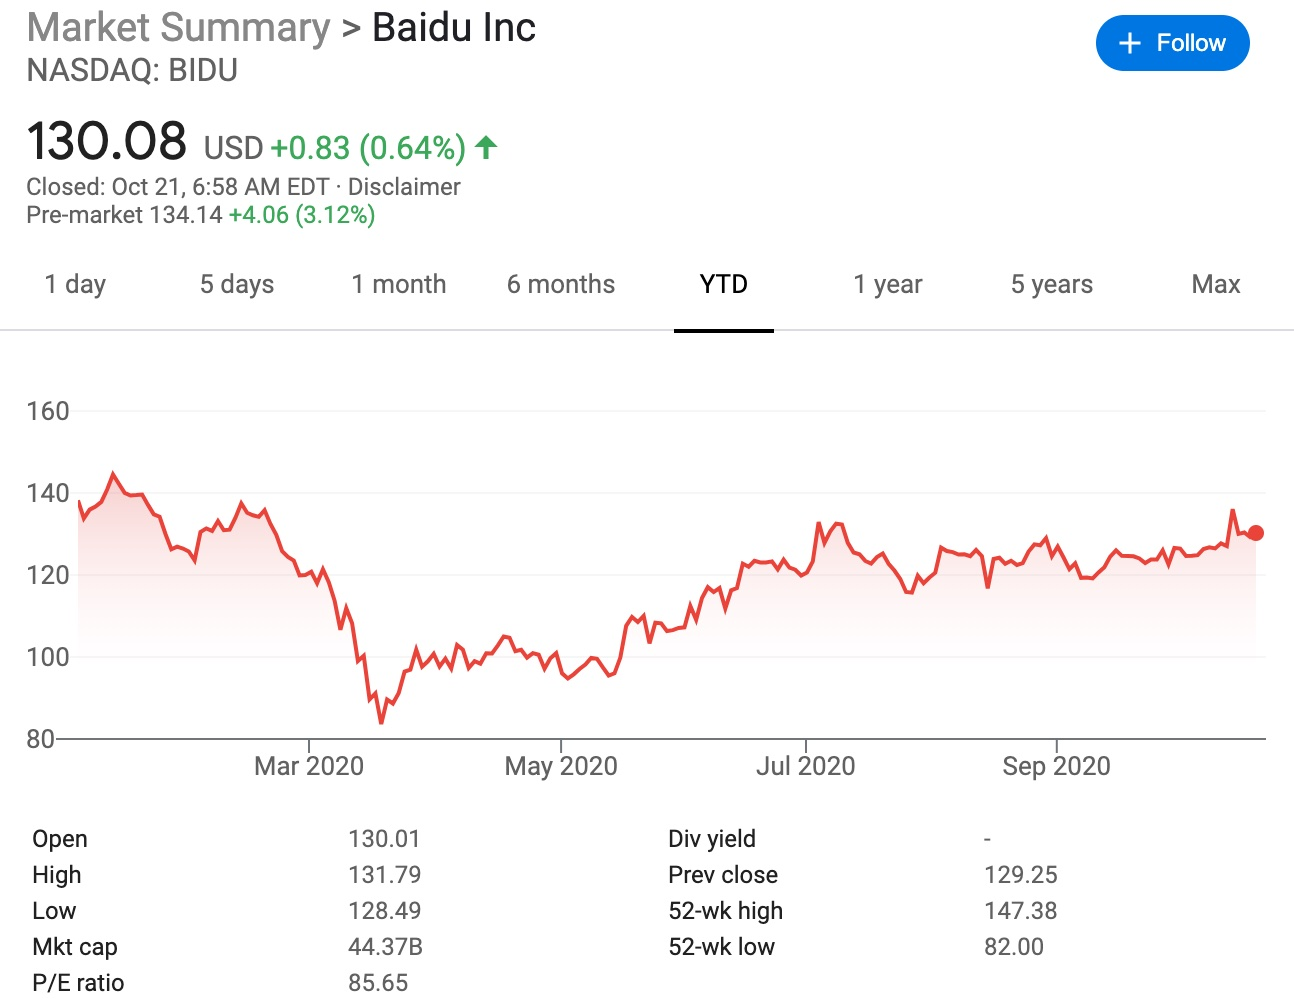 Baidu reportedly plans secondary listing in Hong Kong by year-end-CnTechPost